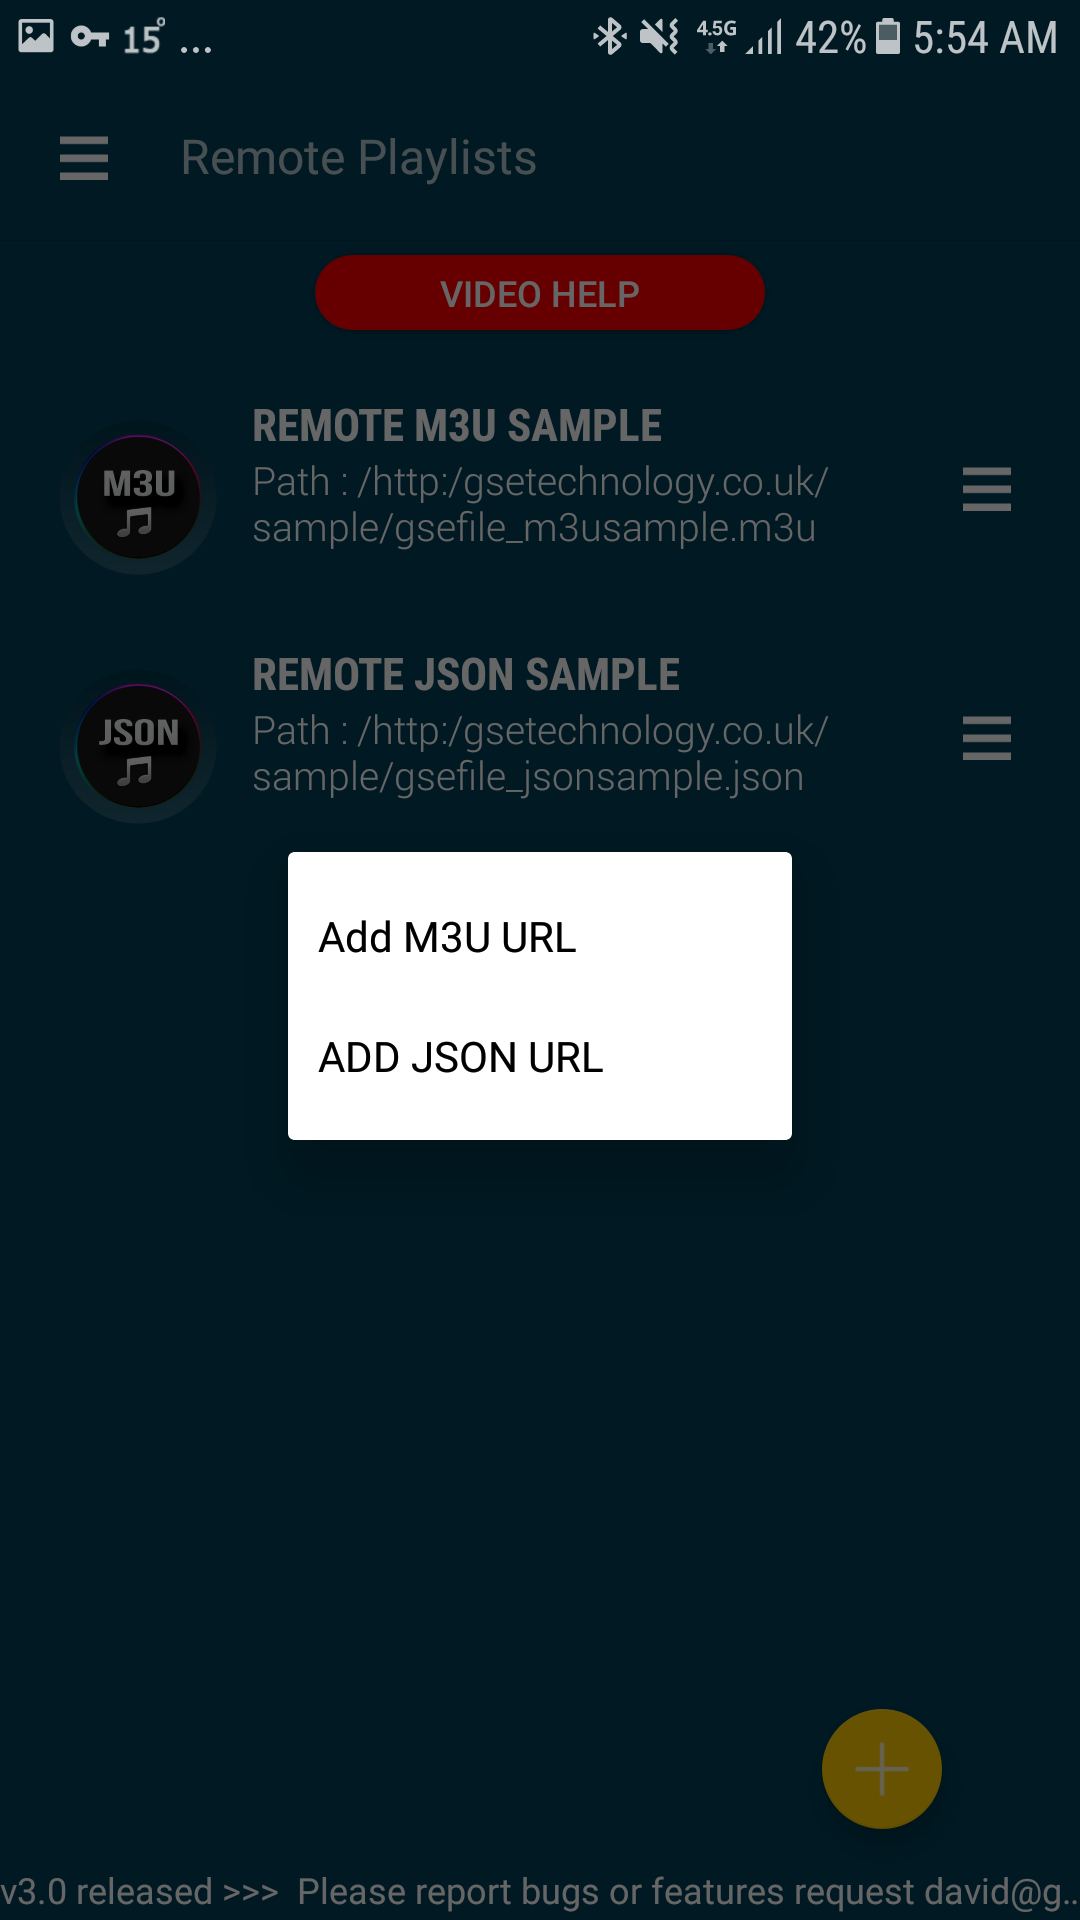 We Do Streaming! - IPTV App on Android and iOS: How to use